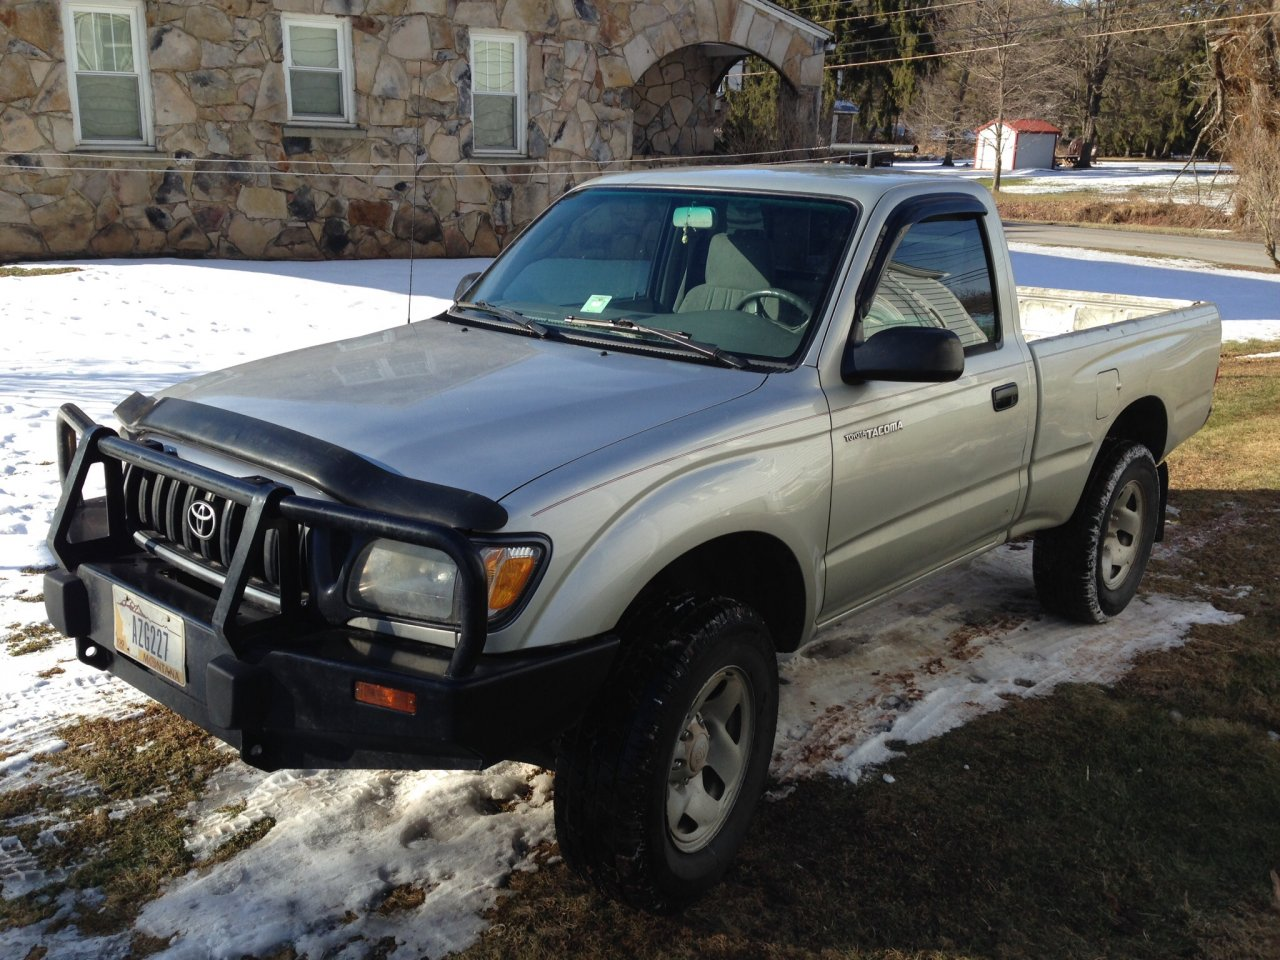 For Sale 2001 Regular Cab Tacoma 4x4 Arb Bumper No Rust